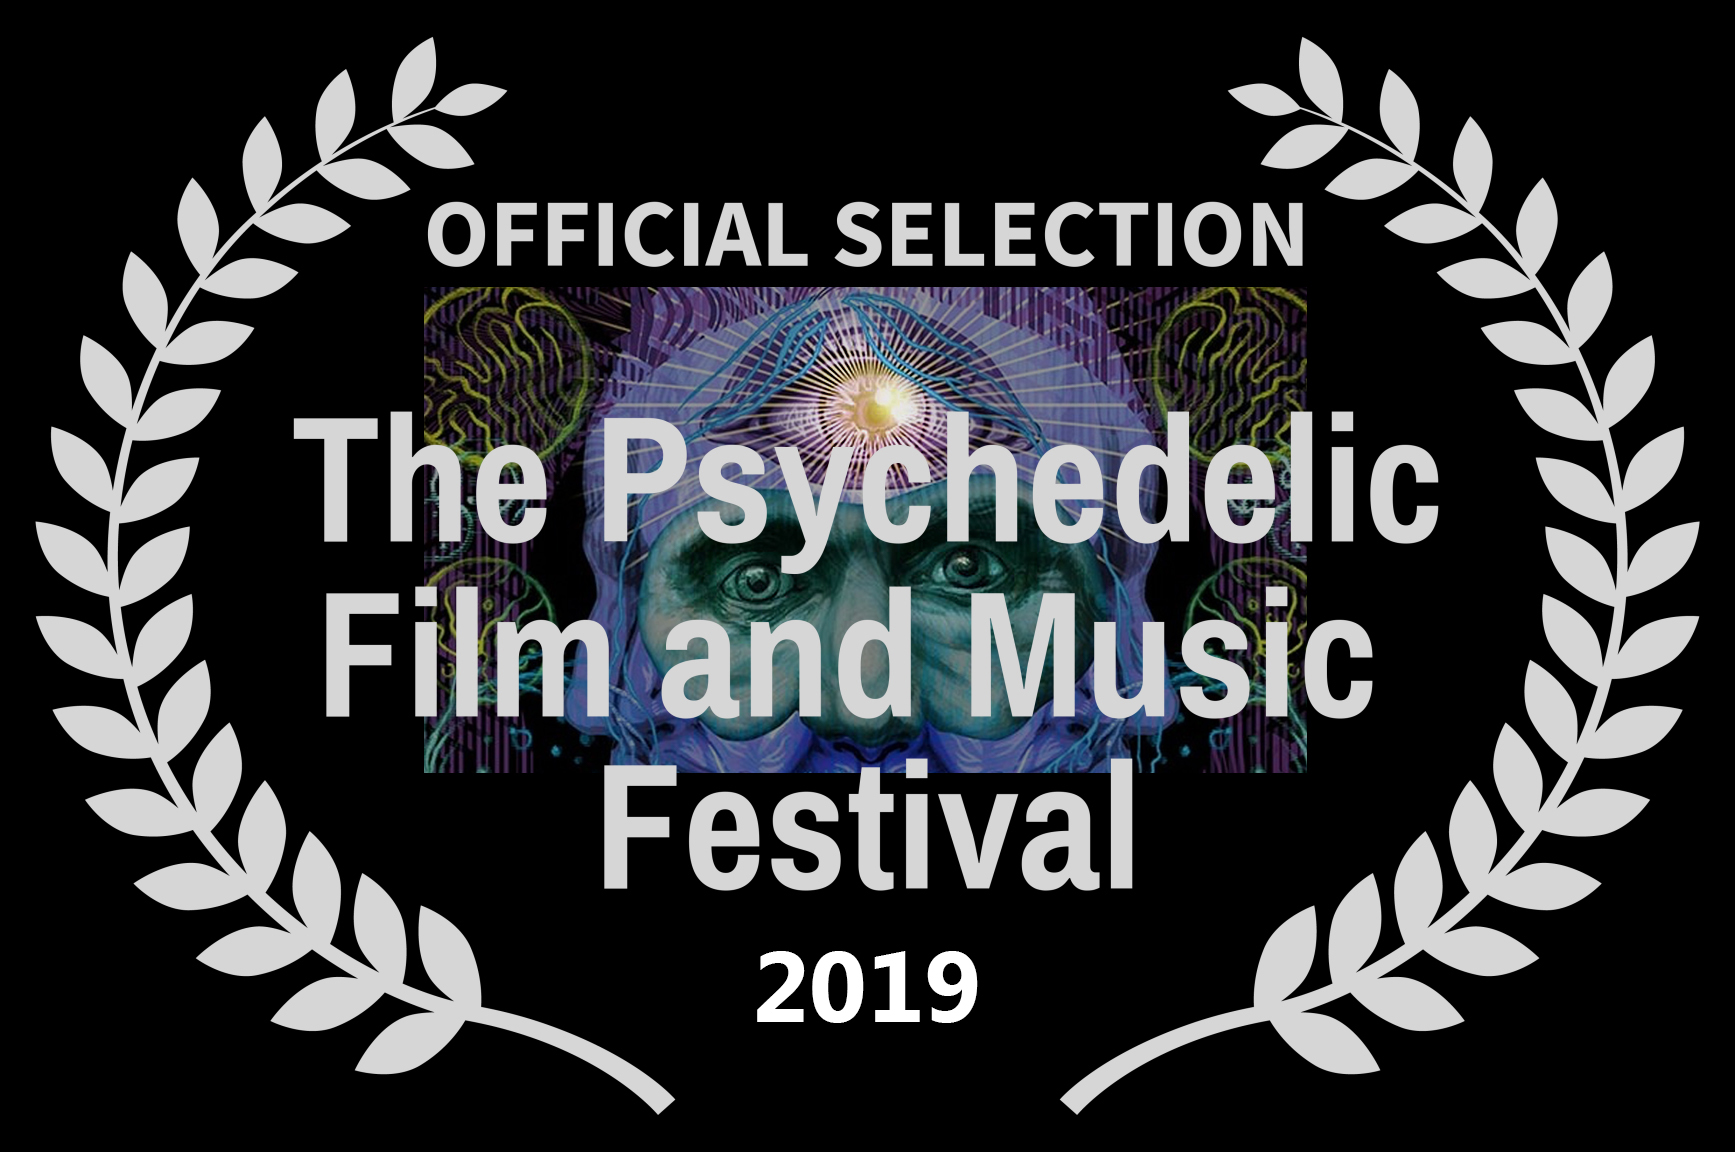 The Land Within  is an official selection of The Psychedelic Film & Music Festival! A truly unique festival of visionary intersections where science and art align with the universe. May 17th & May 25th, 2019  The Land Within   screens  May 25th  in  Spirituality & Consciousness Documentaries,  4:00 - 6:00pm at The Producer's Club, 358 W. 44th St, NYC.  https://www.psychedelicfilmandmusicfestival.com/new-page